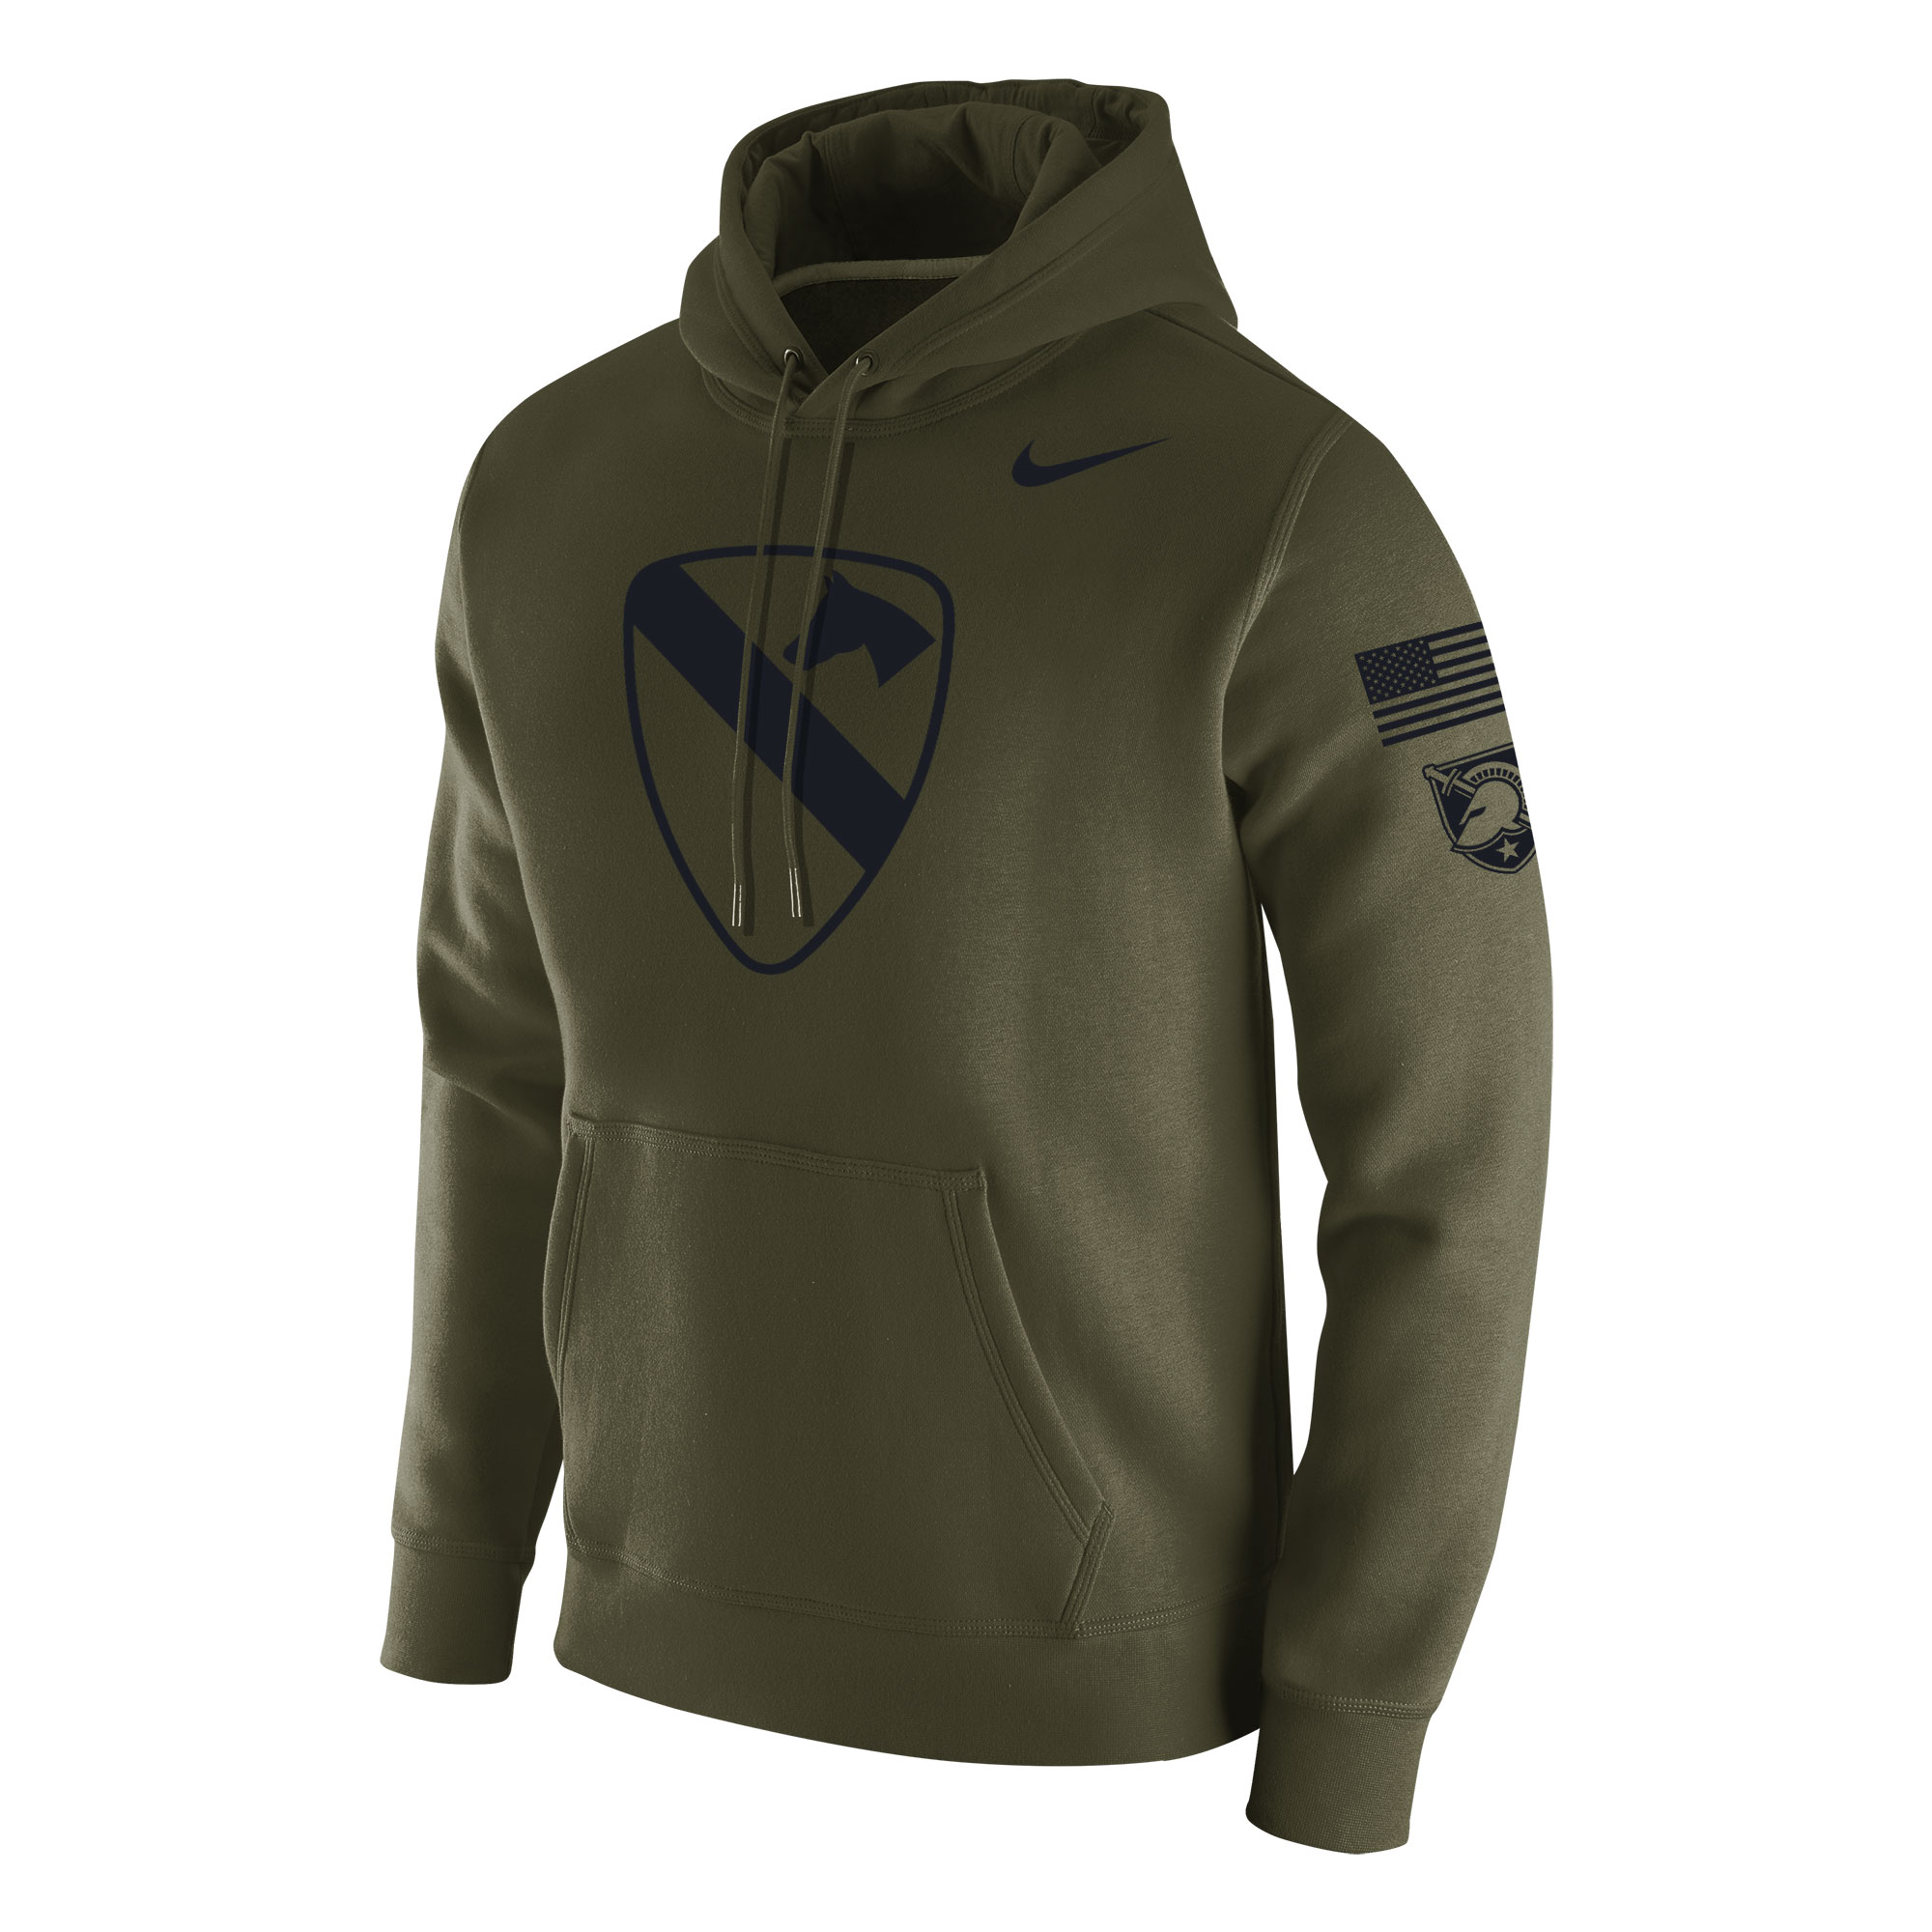 Men's Nike Green Army Black Knights 1st Cavalry Division Patch Hoodie